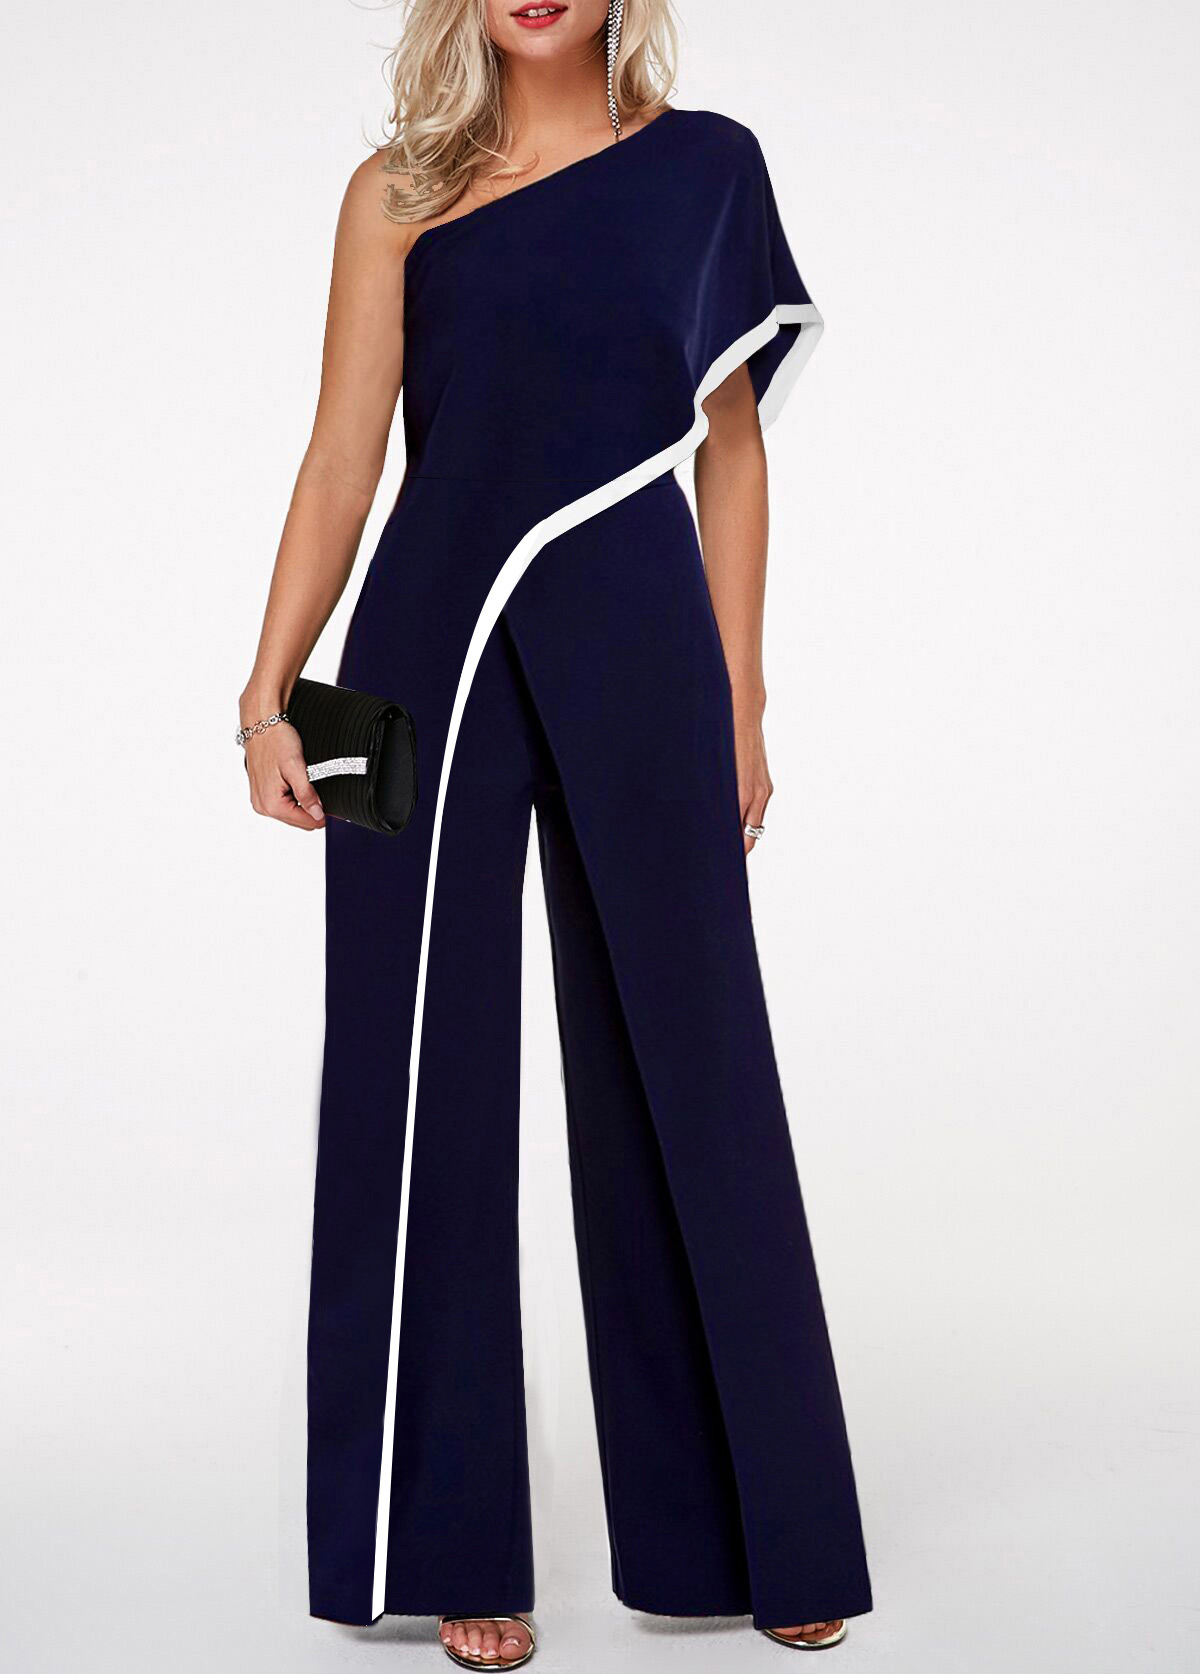 ROTITA One Shoulder Contrast Trim Navy Blue Jumpsuit